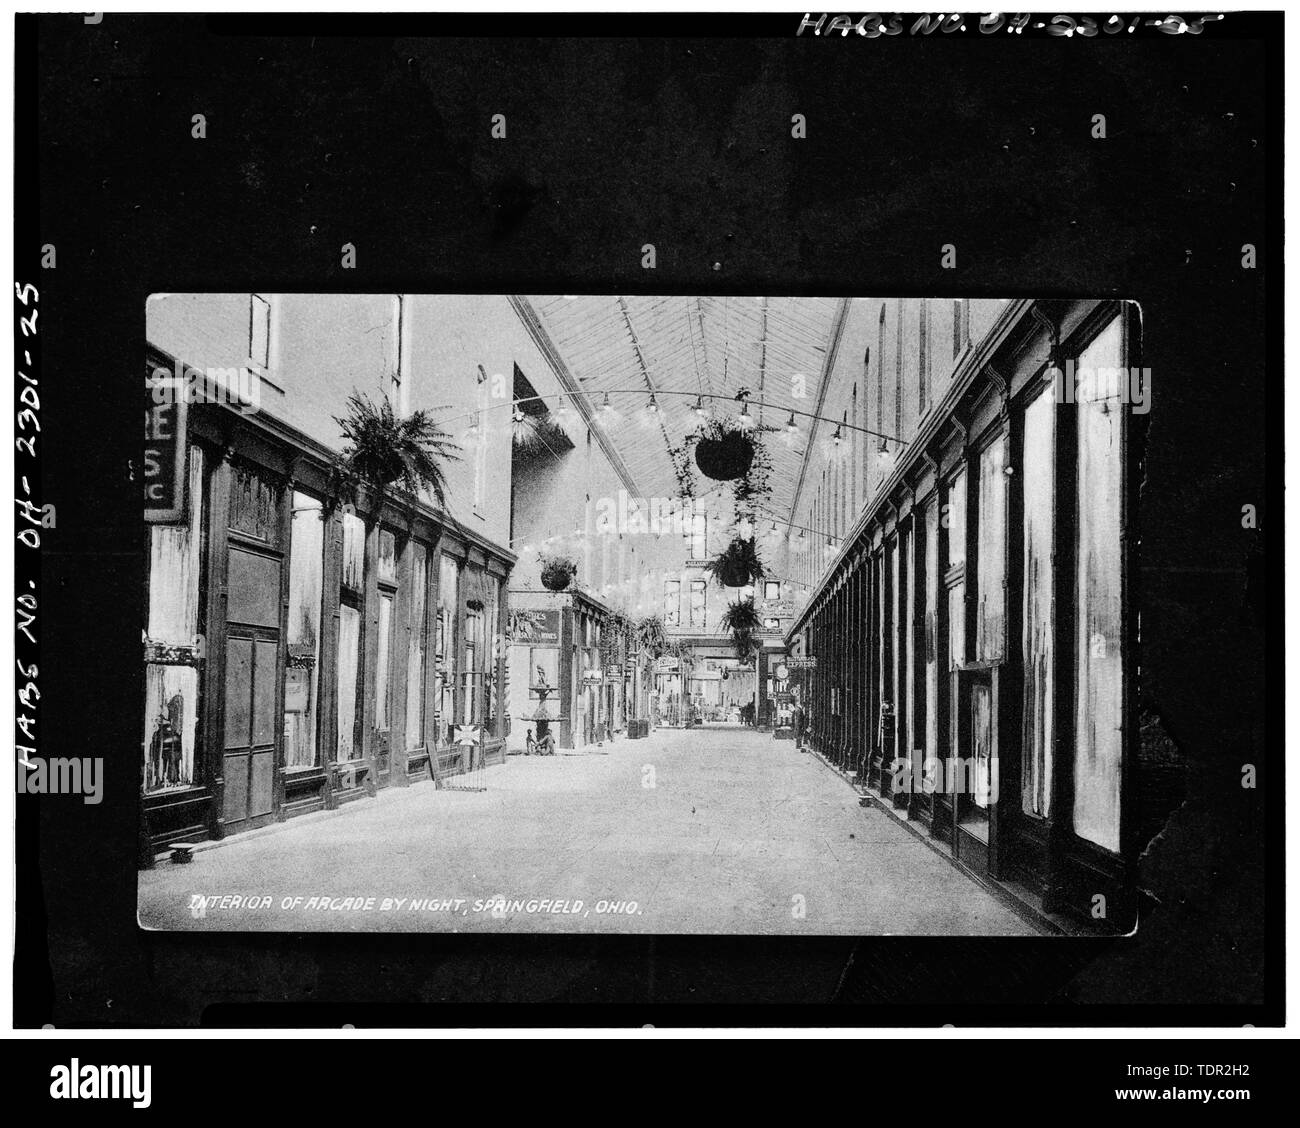 Photograph of postcard (from the Clark County Historical Society, Springfield, Ohio, no date) INTERIOR OF ARCADE BY NIGHT, VIEW NORTH - Arcade Hotel, Fountain Avenue, bounded by High and Washington Streets, Springfield, Clark County, OH - Stock Image